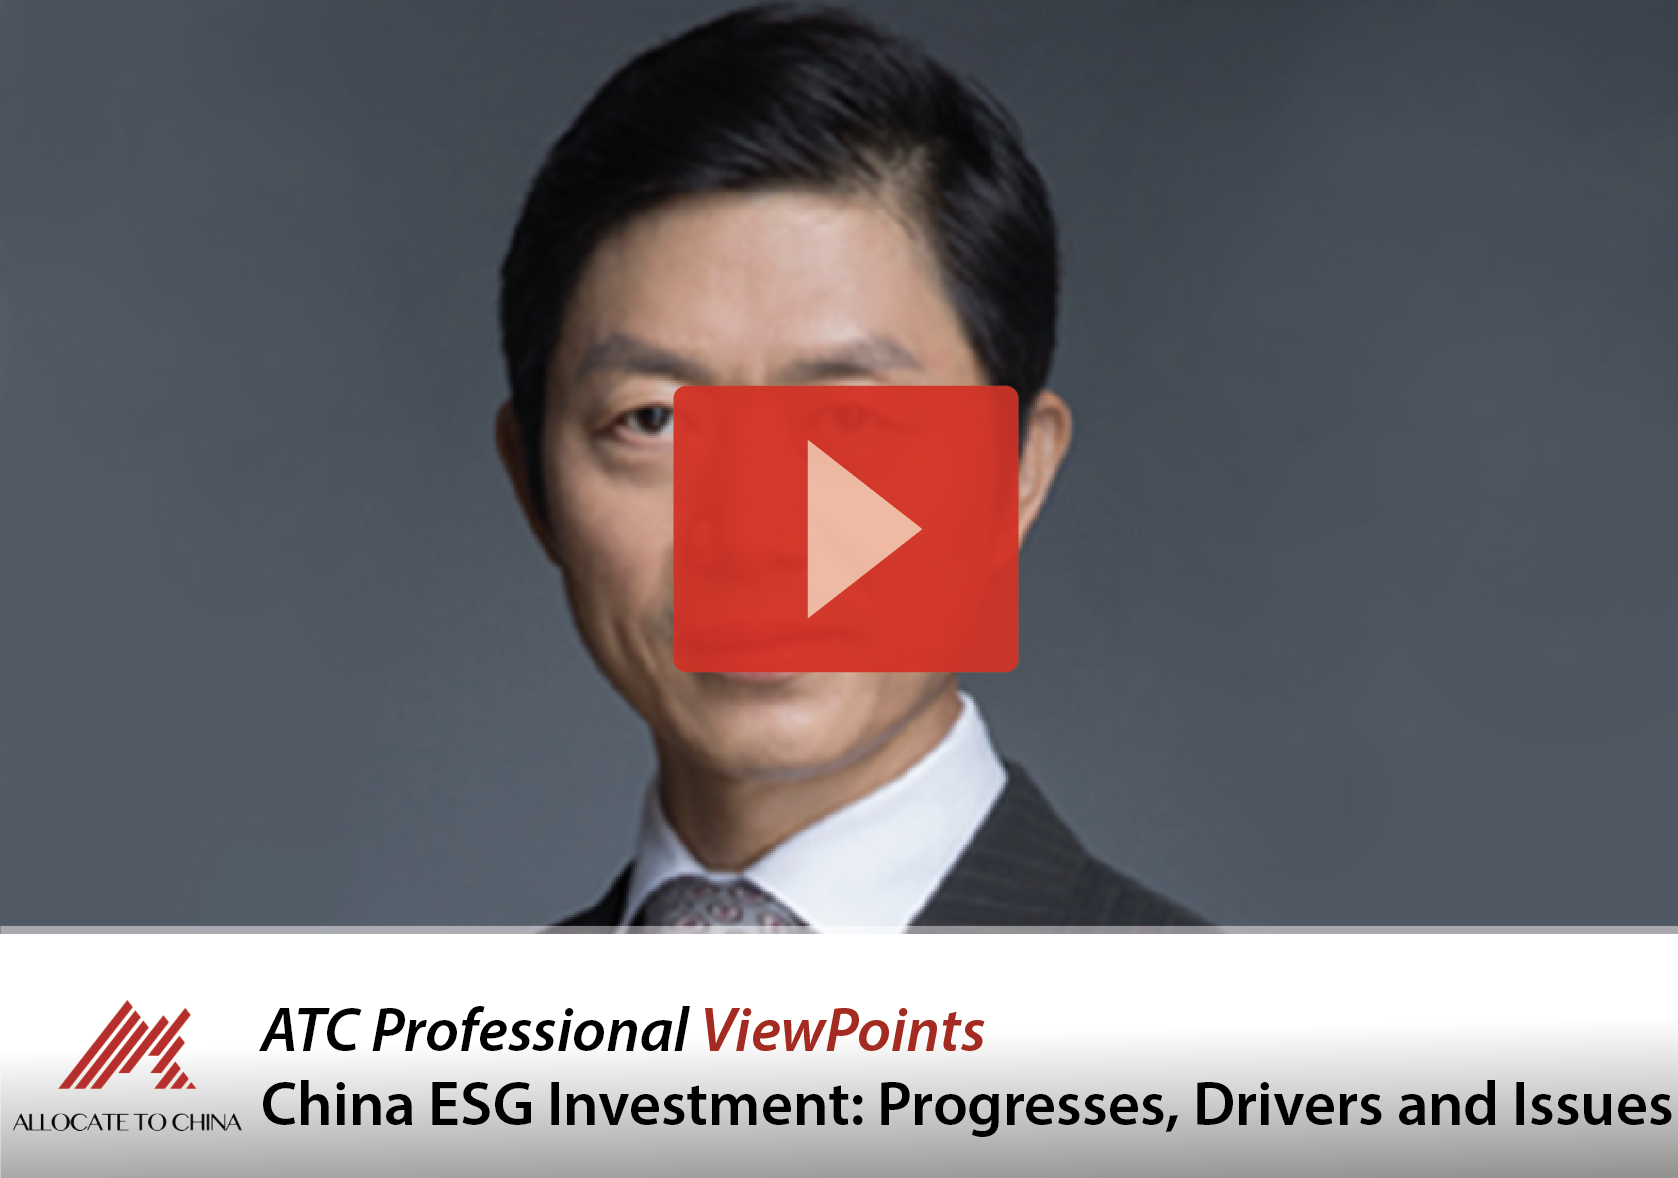 China ESG Investment: Progresses, Drivers and Issues